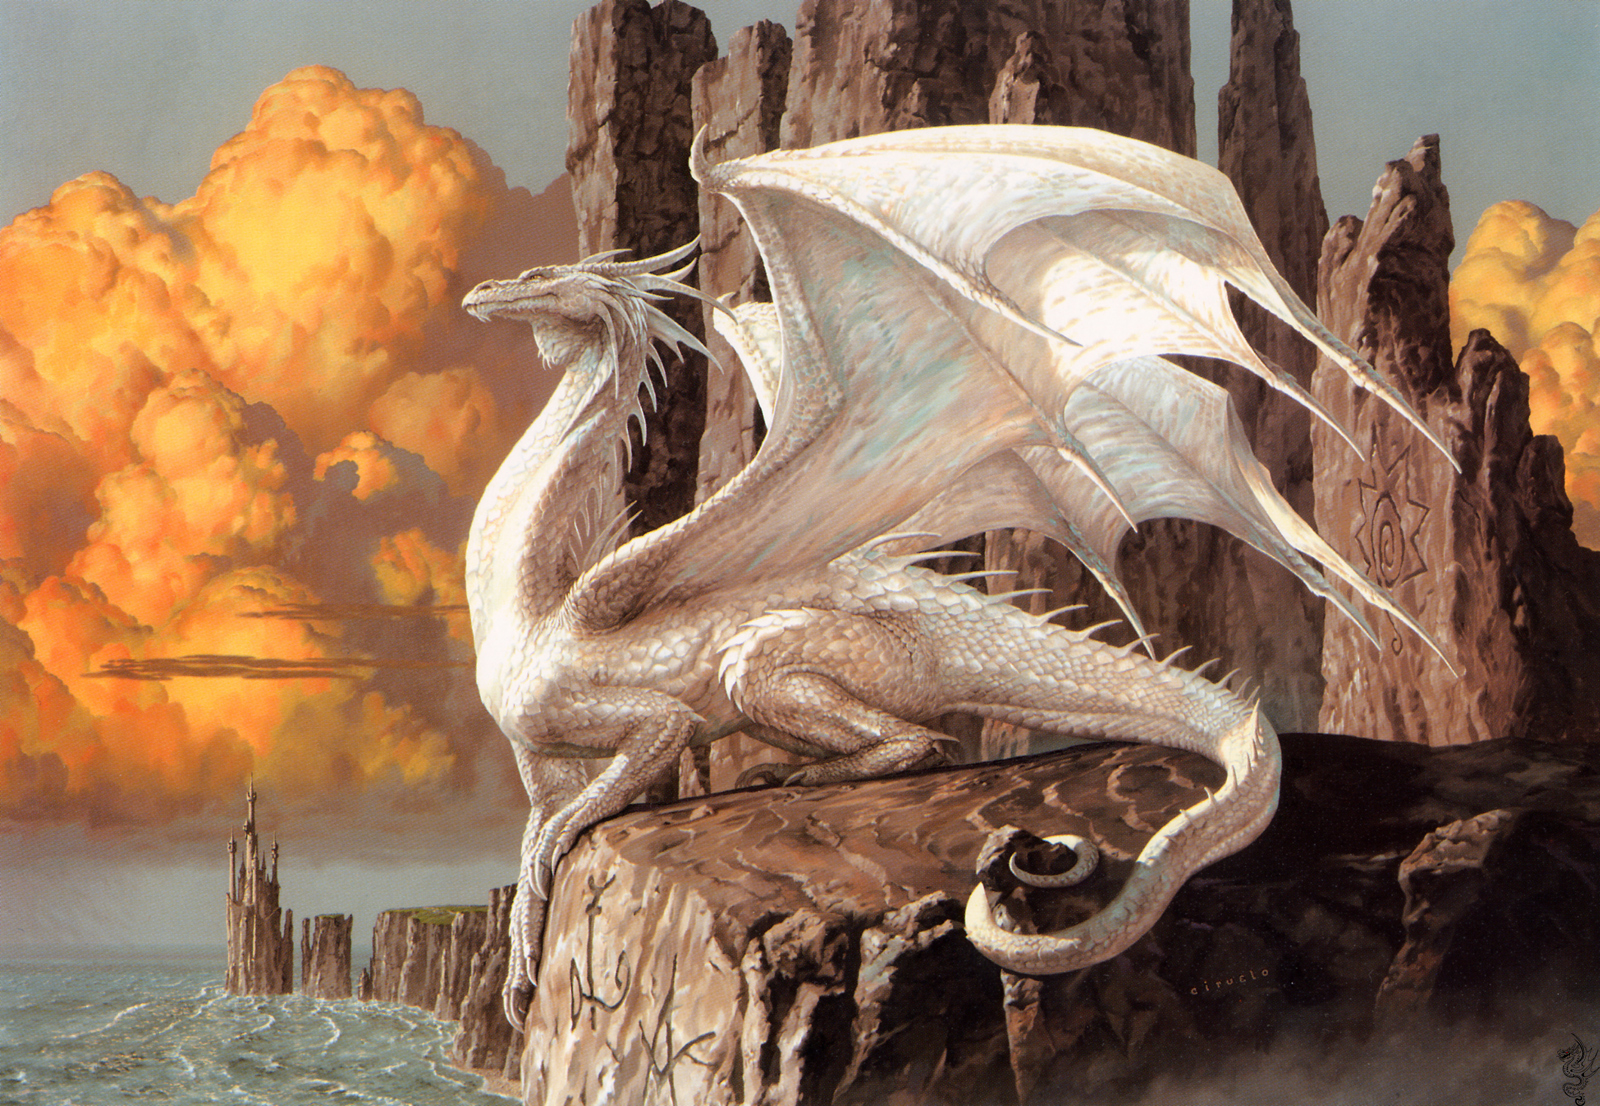 Dragons fantasy art